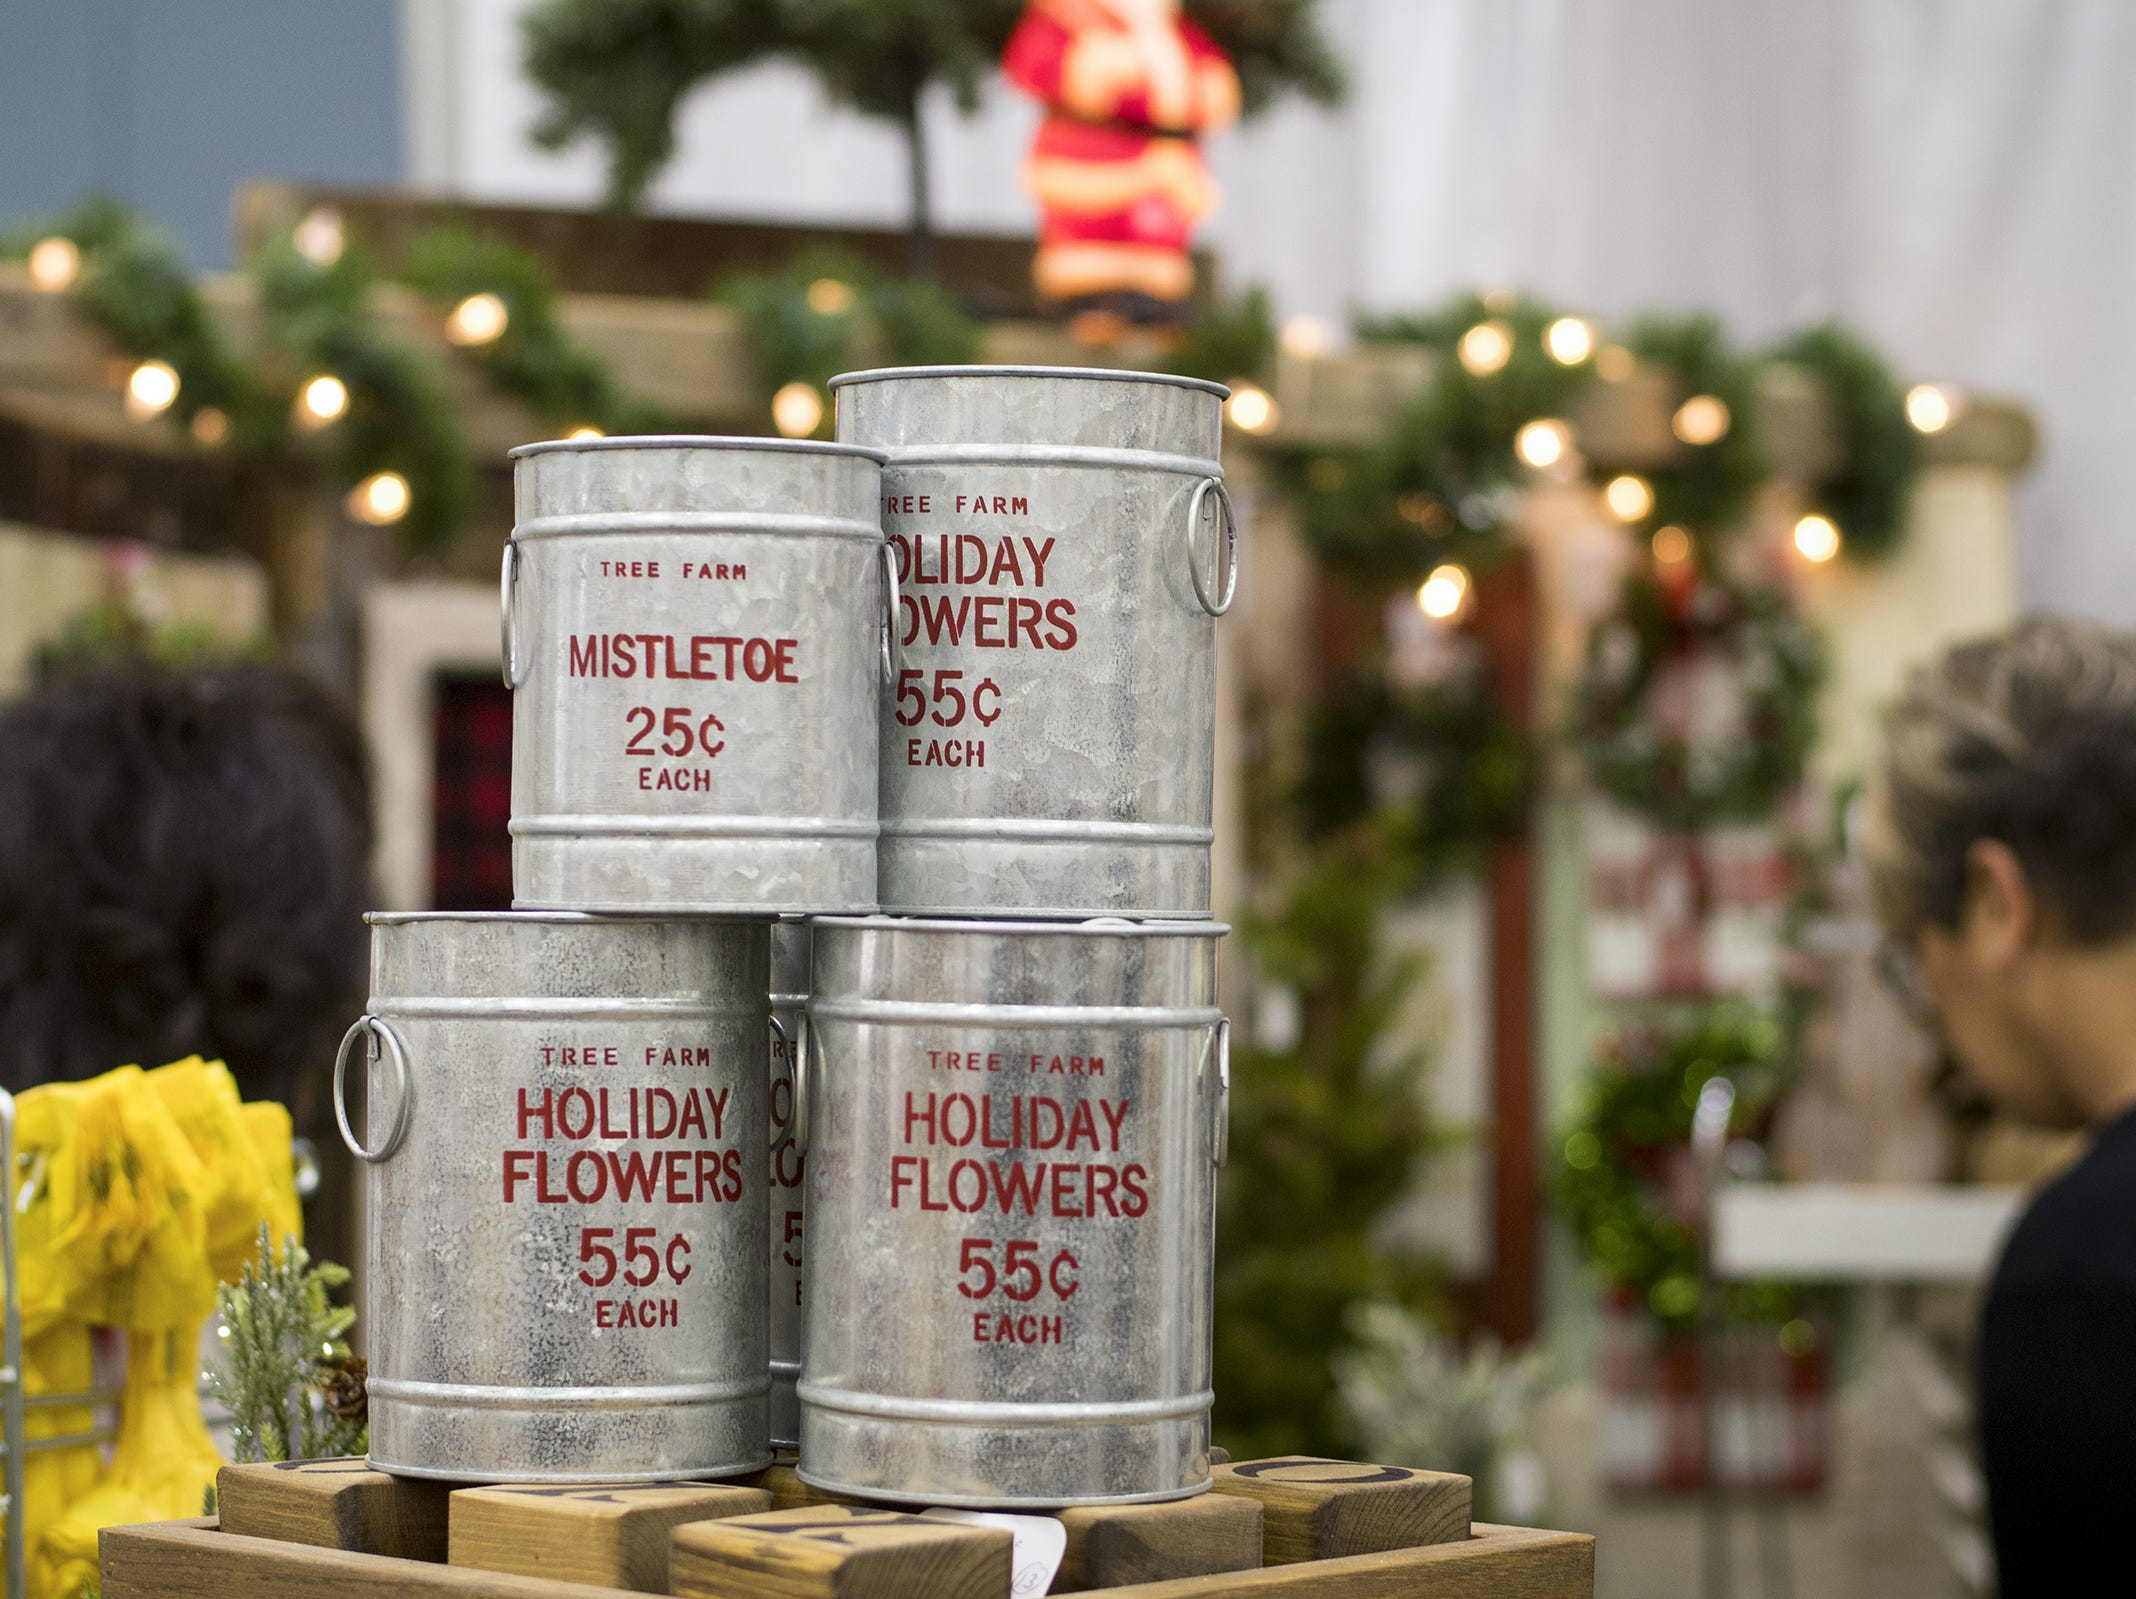 The YH Designs sells holiday decorations during the Greater Cincinnati Holiday Market at the Duke Energy Center Friday, November 2, 2018 in Cincinnati, Ohio. The event runs through Sunday, November 4.